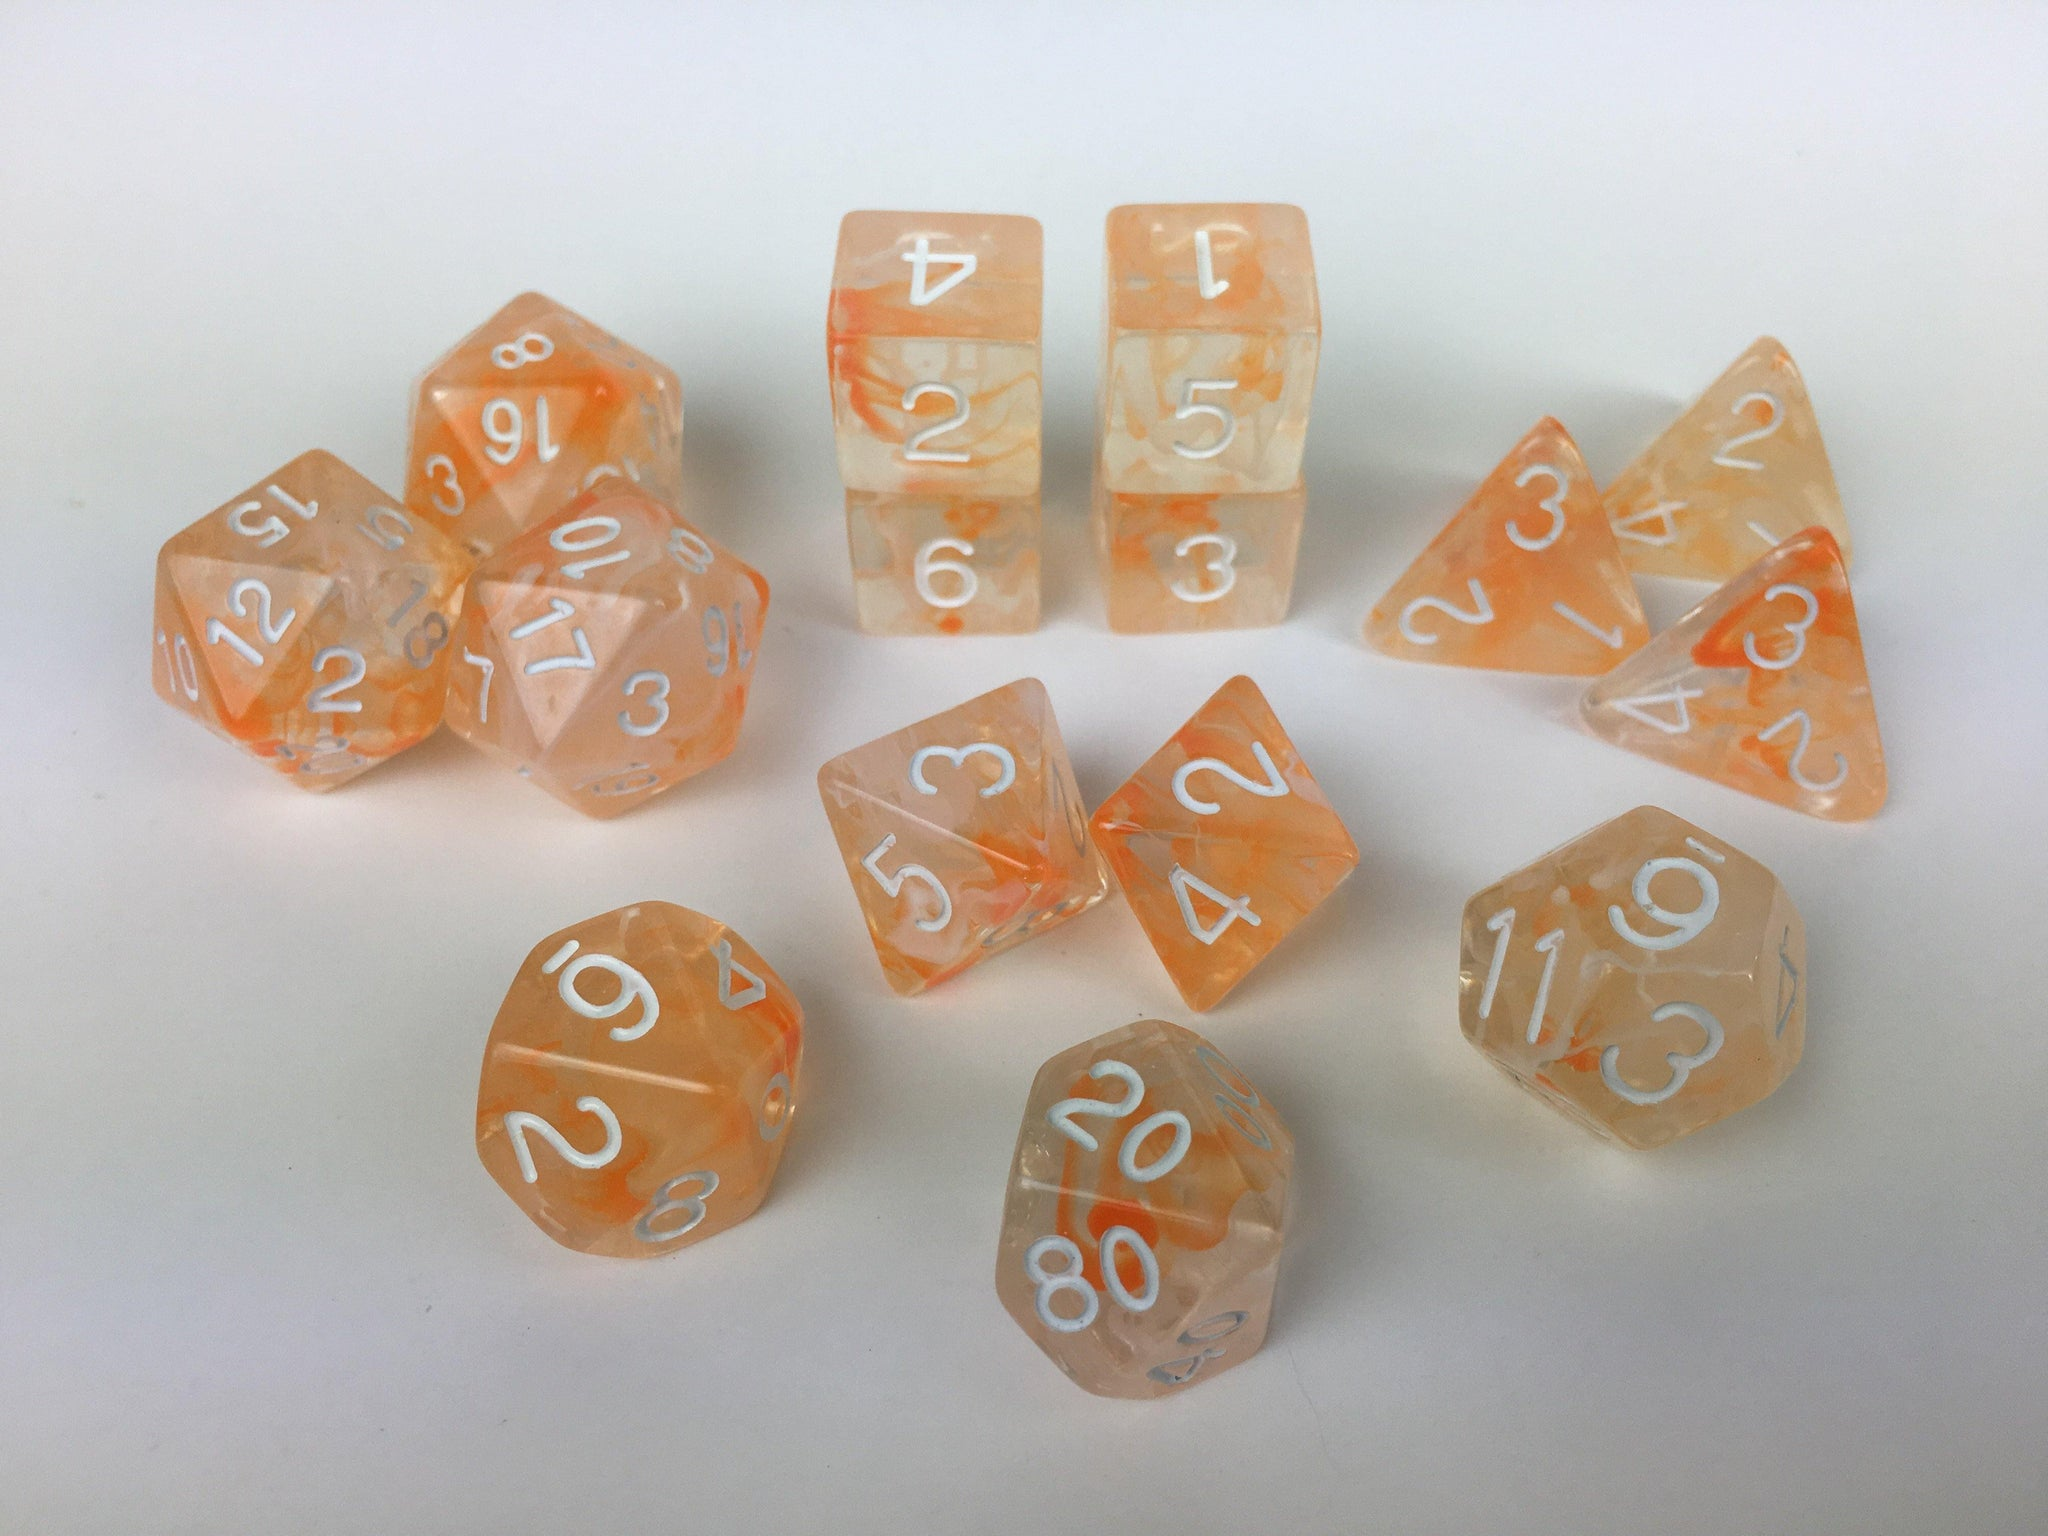 Set of 15 large high-visibility game dice: Diffusion Koi Pond w/ White Numbers